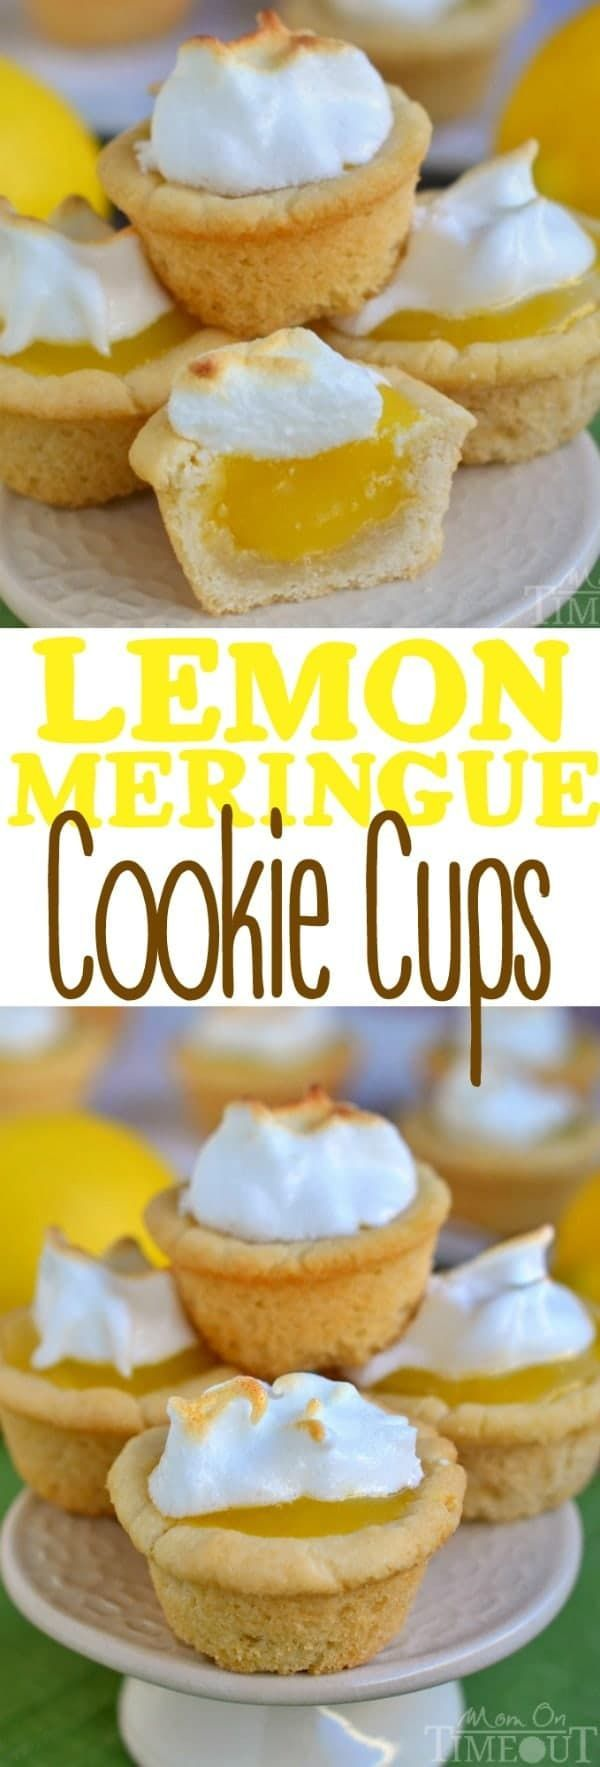 Lemon Meringue Cookie Cups are the perfect dessert for my lemon lovers out there! Sugar cookie cups pair perfectly with the refreshingly tart lemon curd filling in these sweet little Lemon Meringue Cookie Cups!The lemon curd filling is made in the microwave and is going to be your new favorite thing - promise. I love these delightful little cups for parties and entertaining.  // Mom On Timeout #lemon #cookie #cookies #cups #lemoncurd #curd #meringue #dessert #recipe #recipes